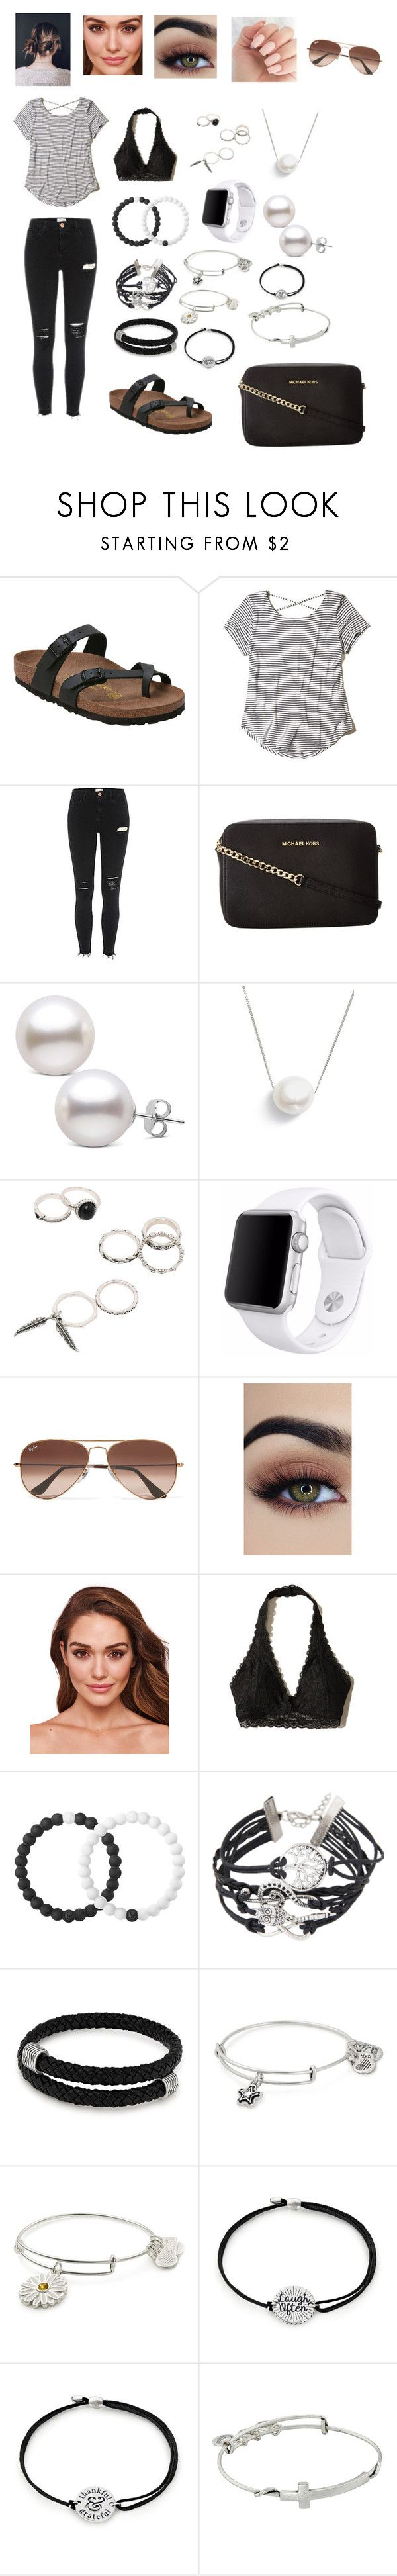 """Shopping/running errands kind of day."" by itsclarissa on Polyvore featuring Birkenstock, Hollister Co., Michael Kors, Chan Luu, Apple, Ray-Ban, Lokai and Alex and Ani"